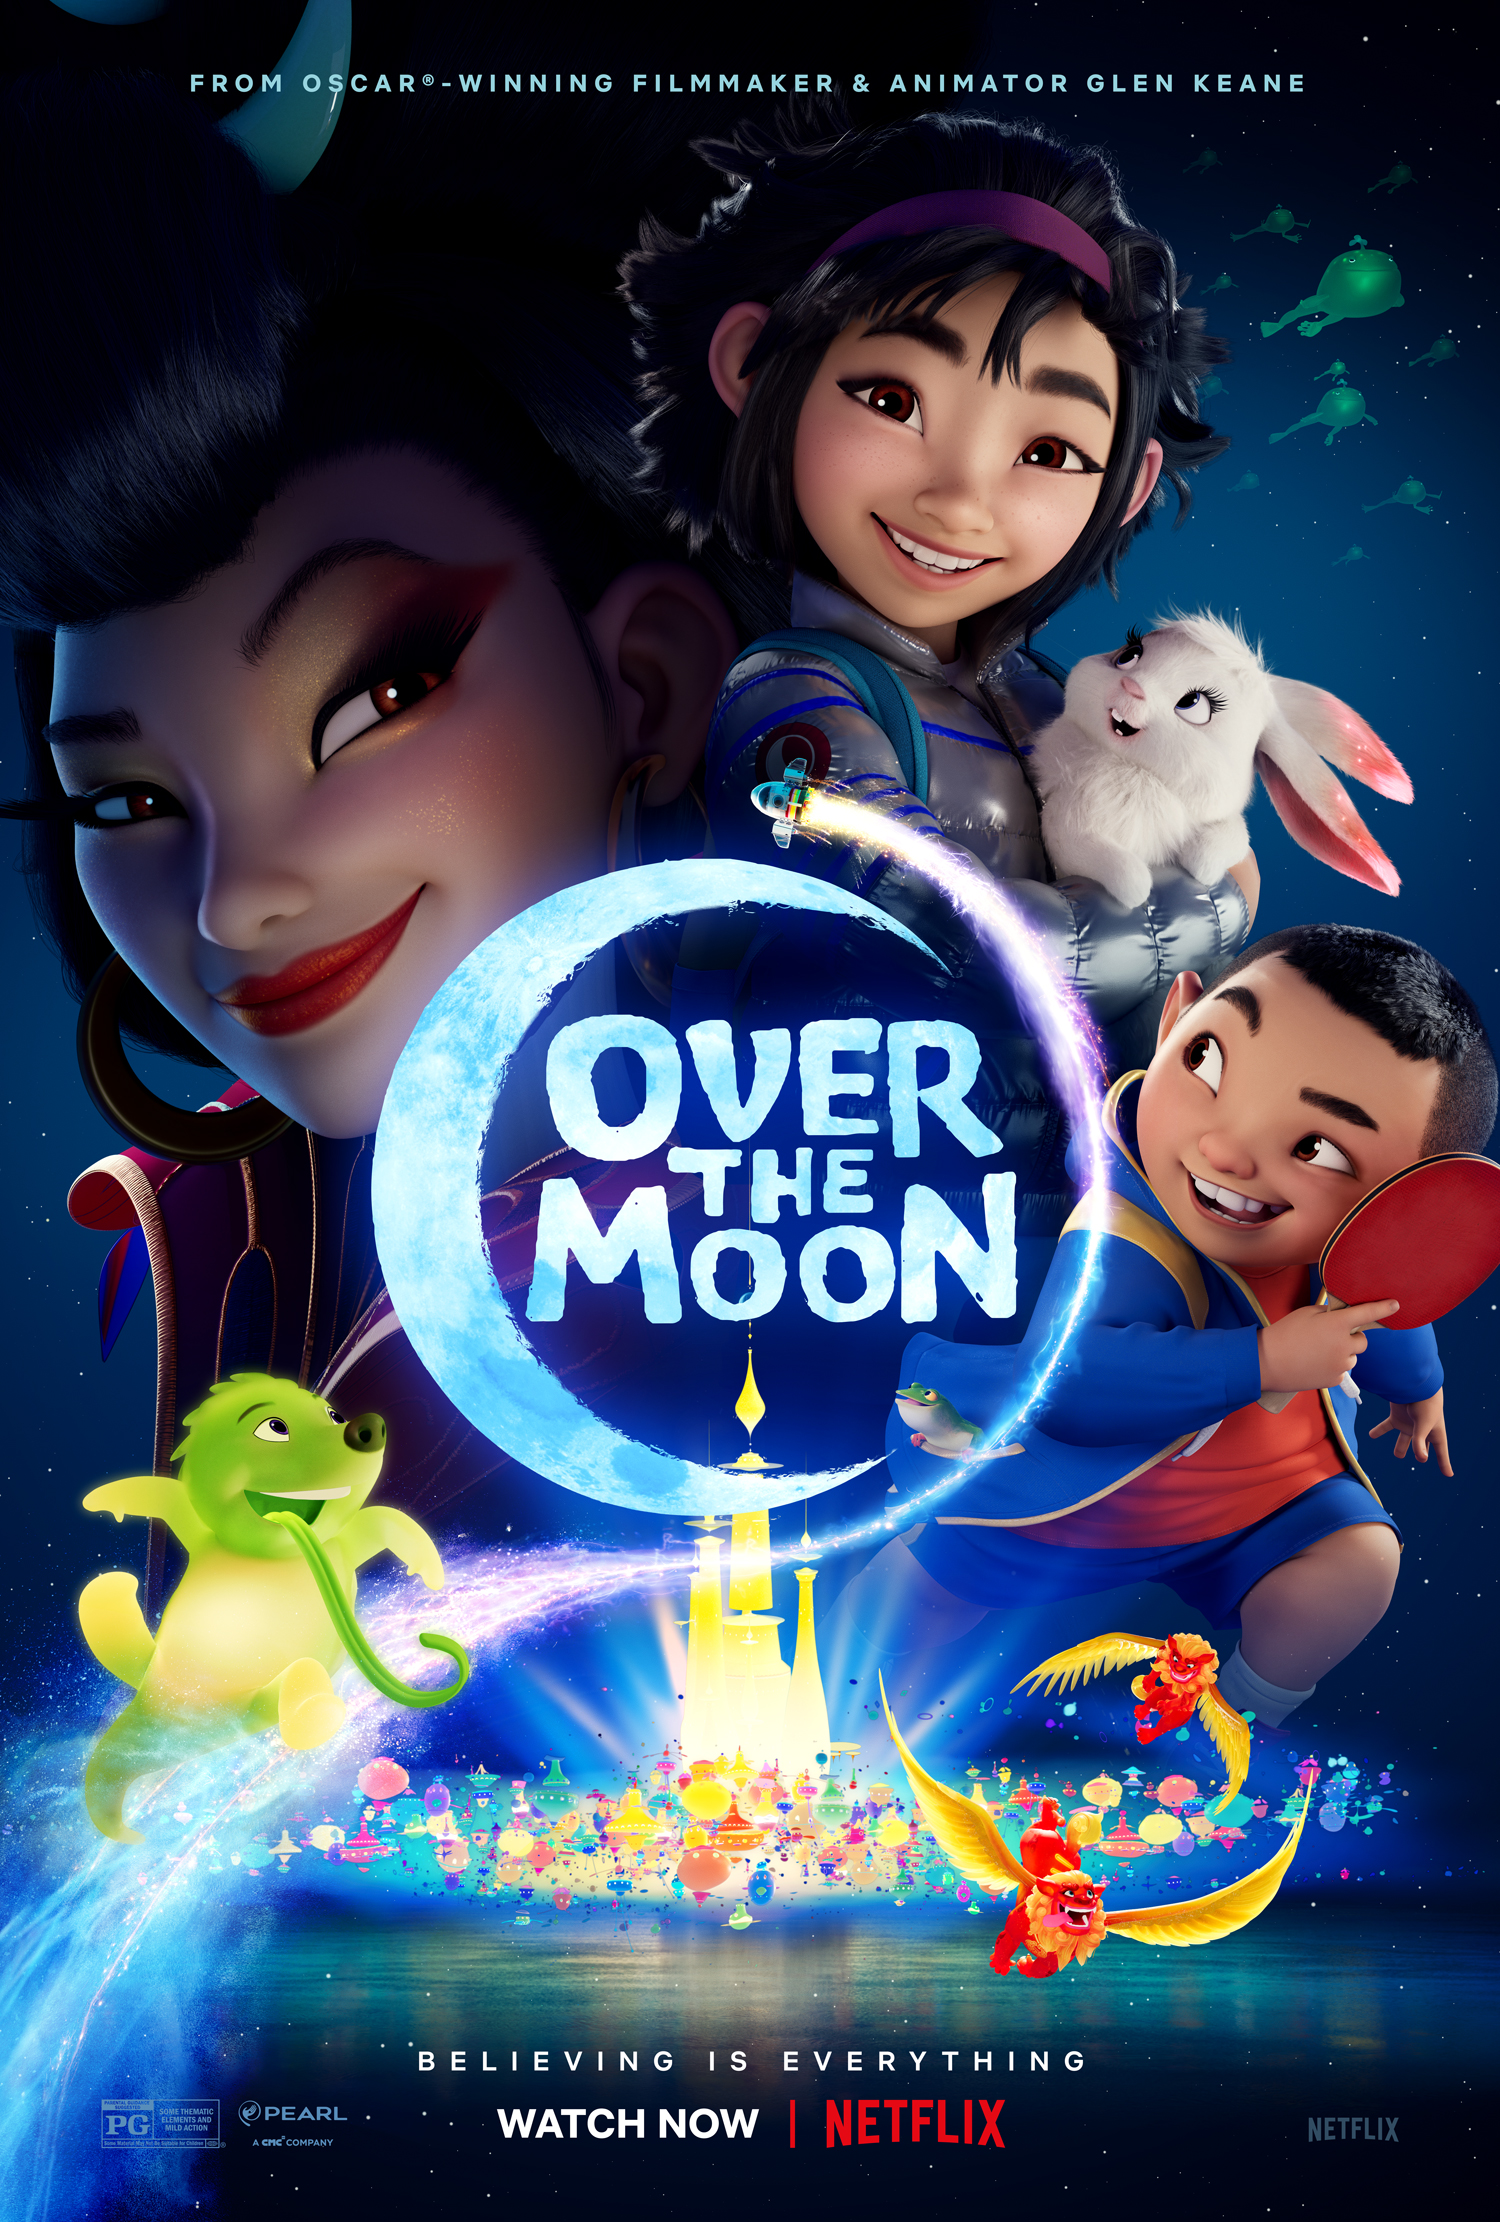 Over the Moon 2020 Hindi ORG Dual Audio 1080p NF HDRip ESubs 1.5GB Free Download